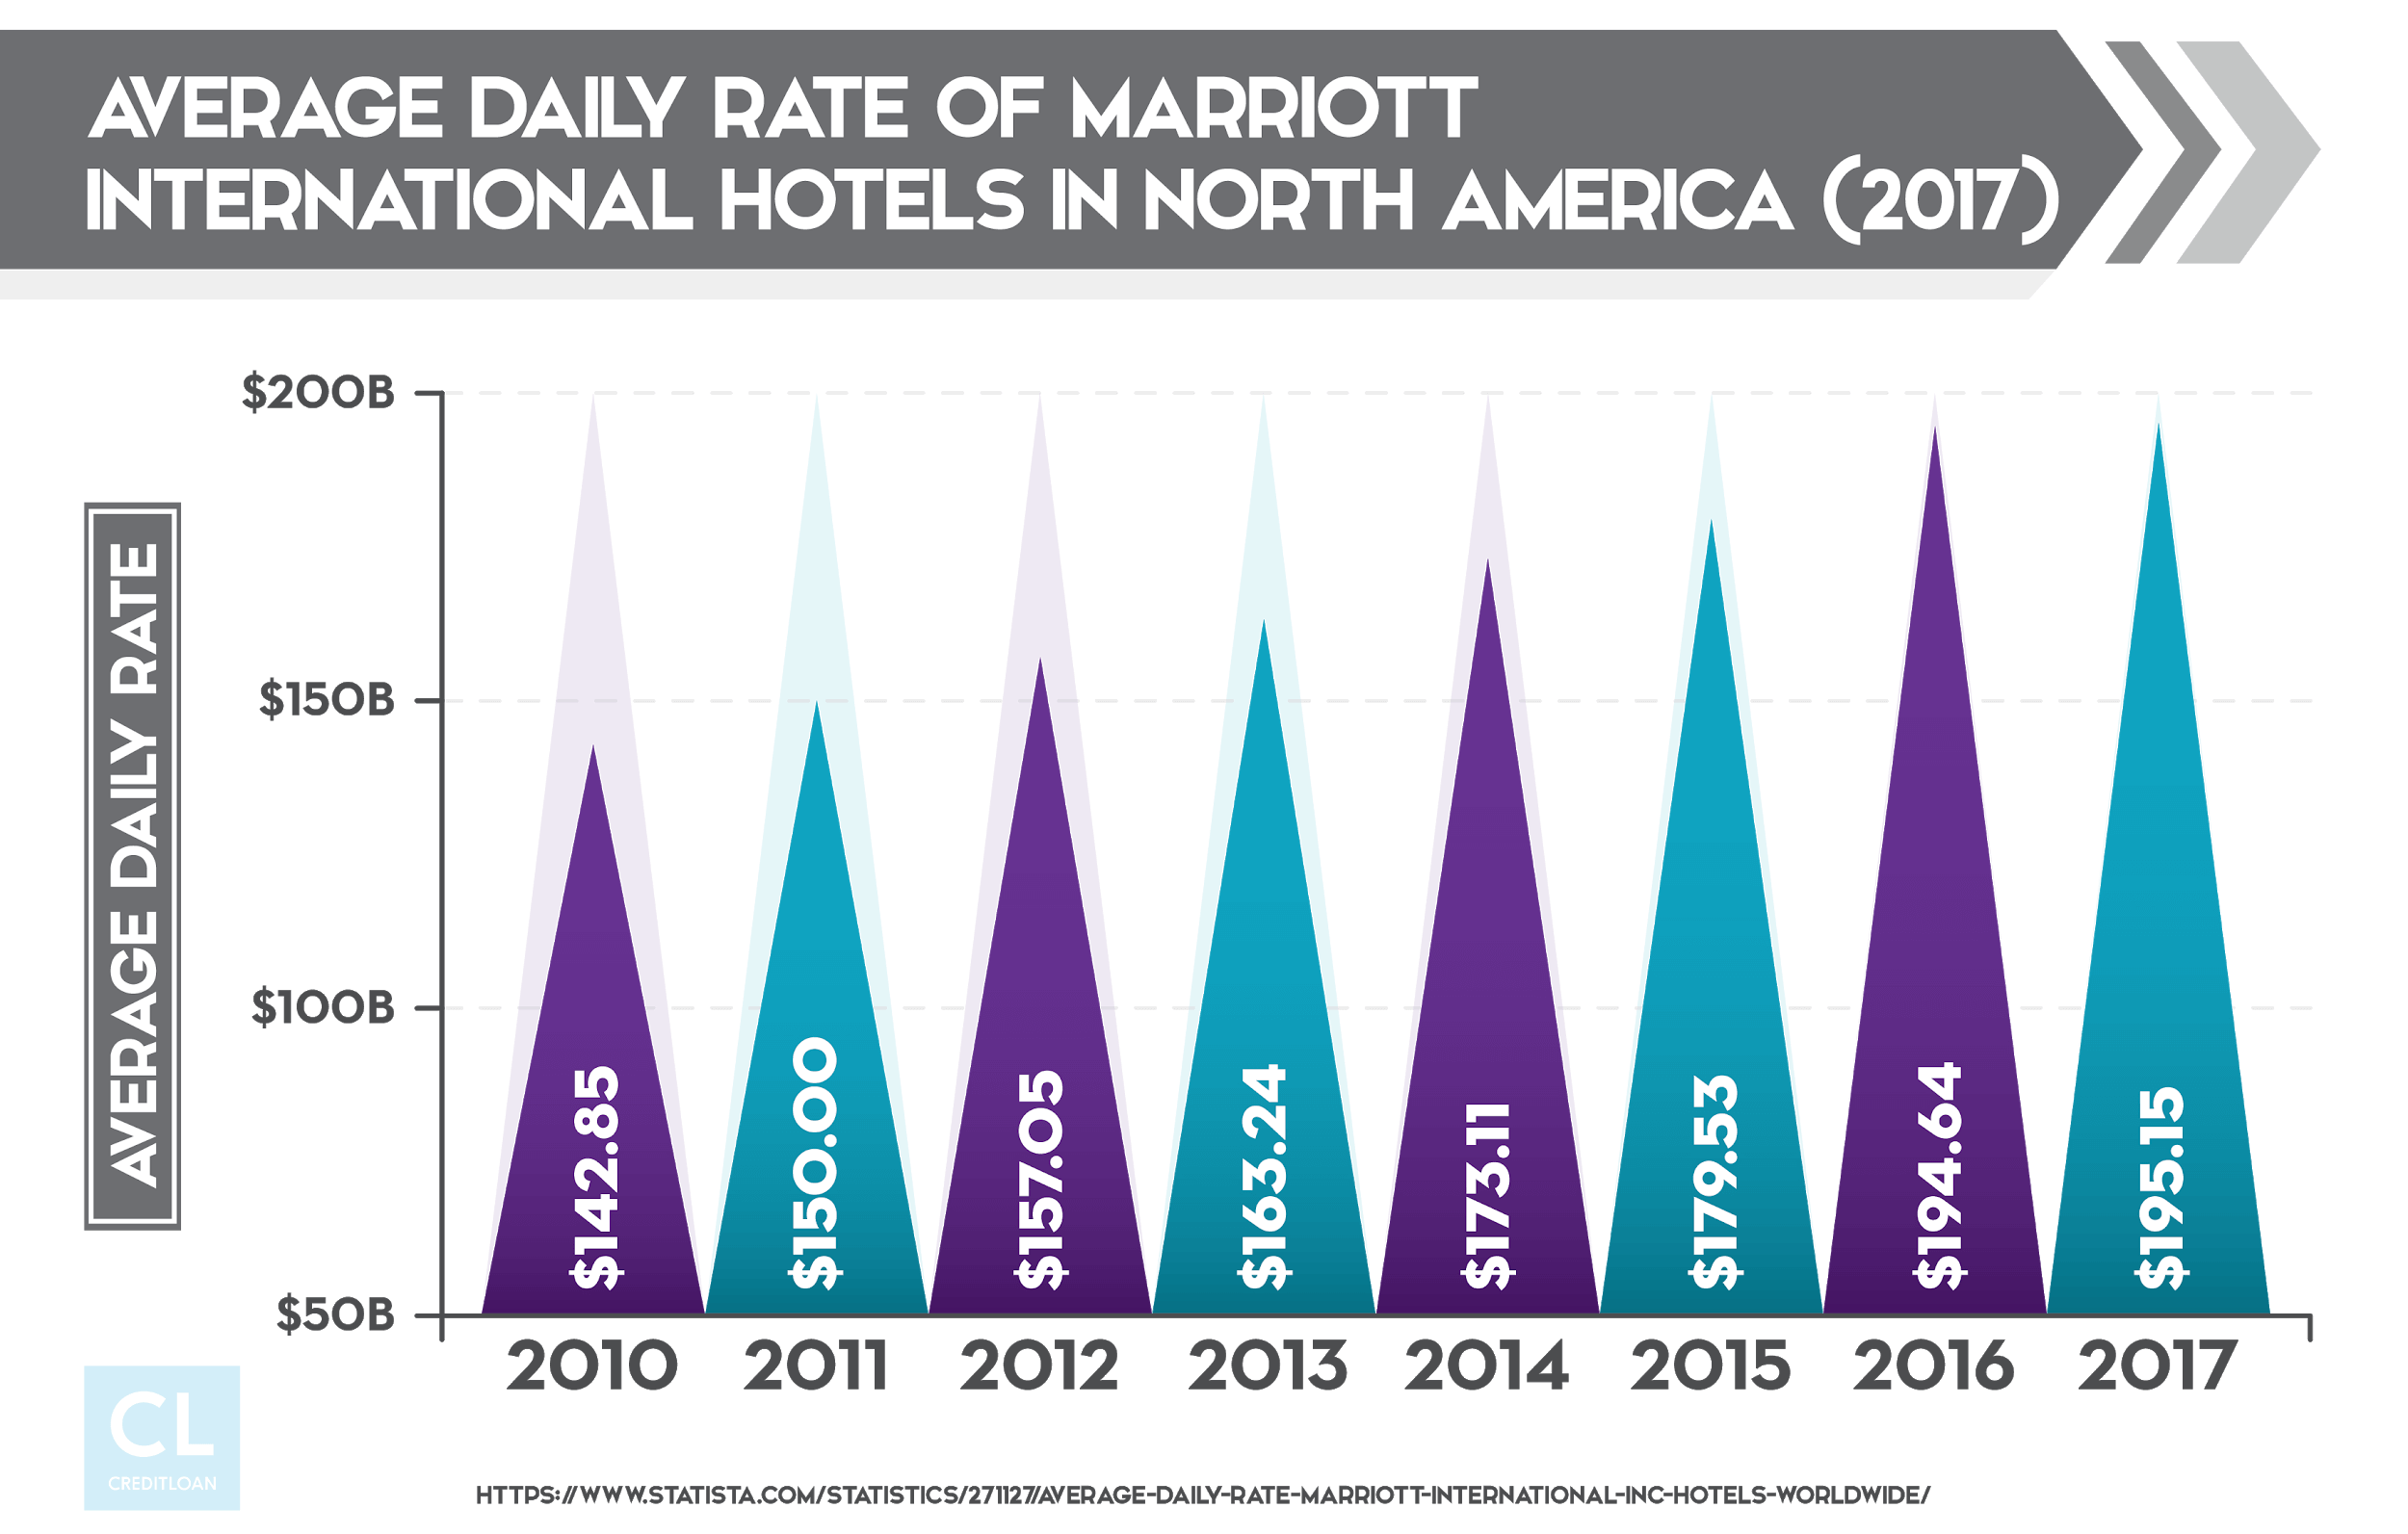 Average Daily Rate of Marriott International Hotels in North America from 2010-2017